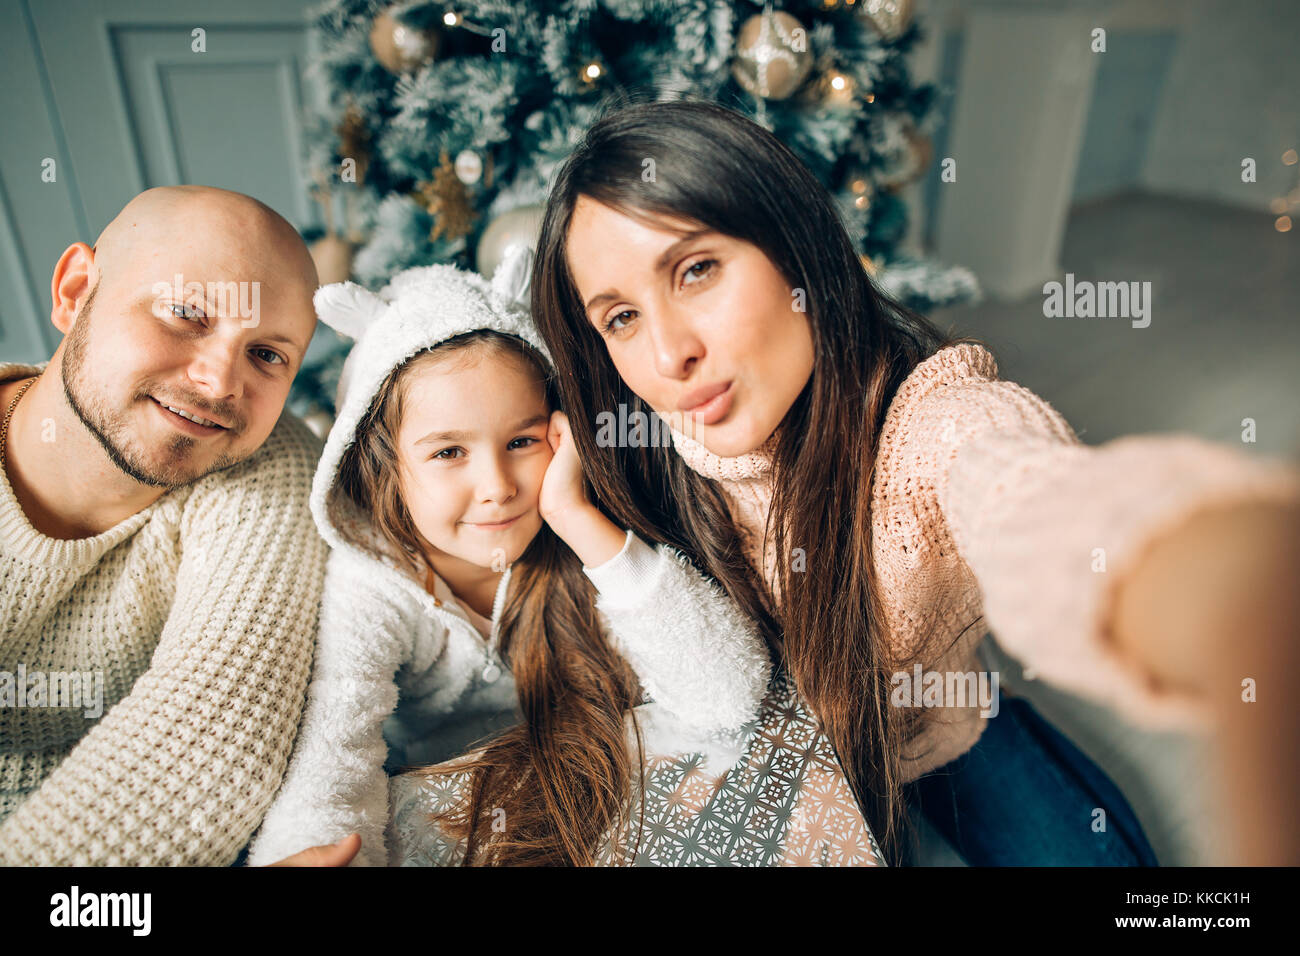 Young happy family of four taking a photo of themselves by a fireplace - Stock Image